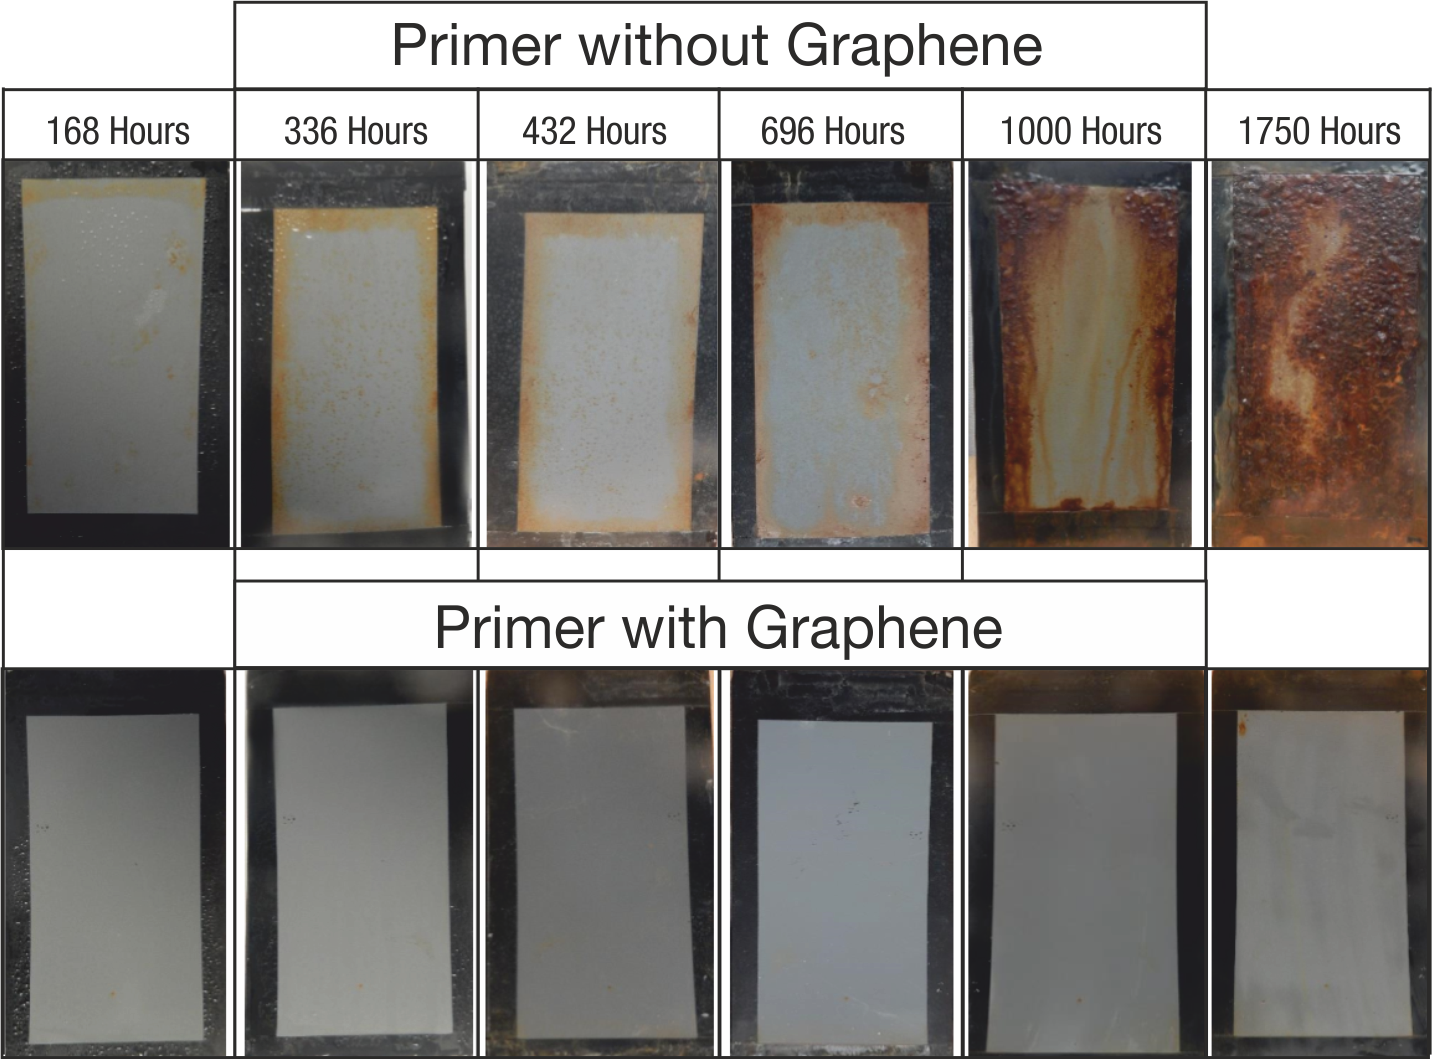 Primer with graphene vs primer without graphene